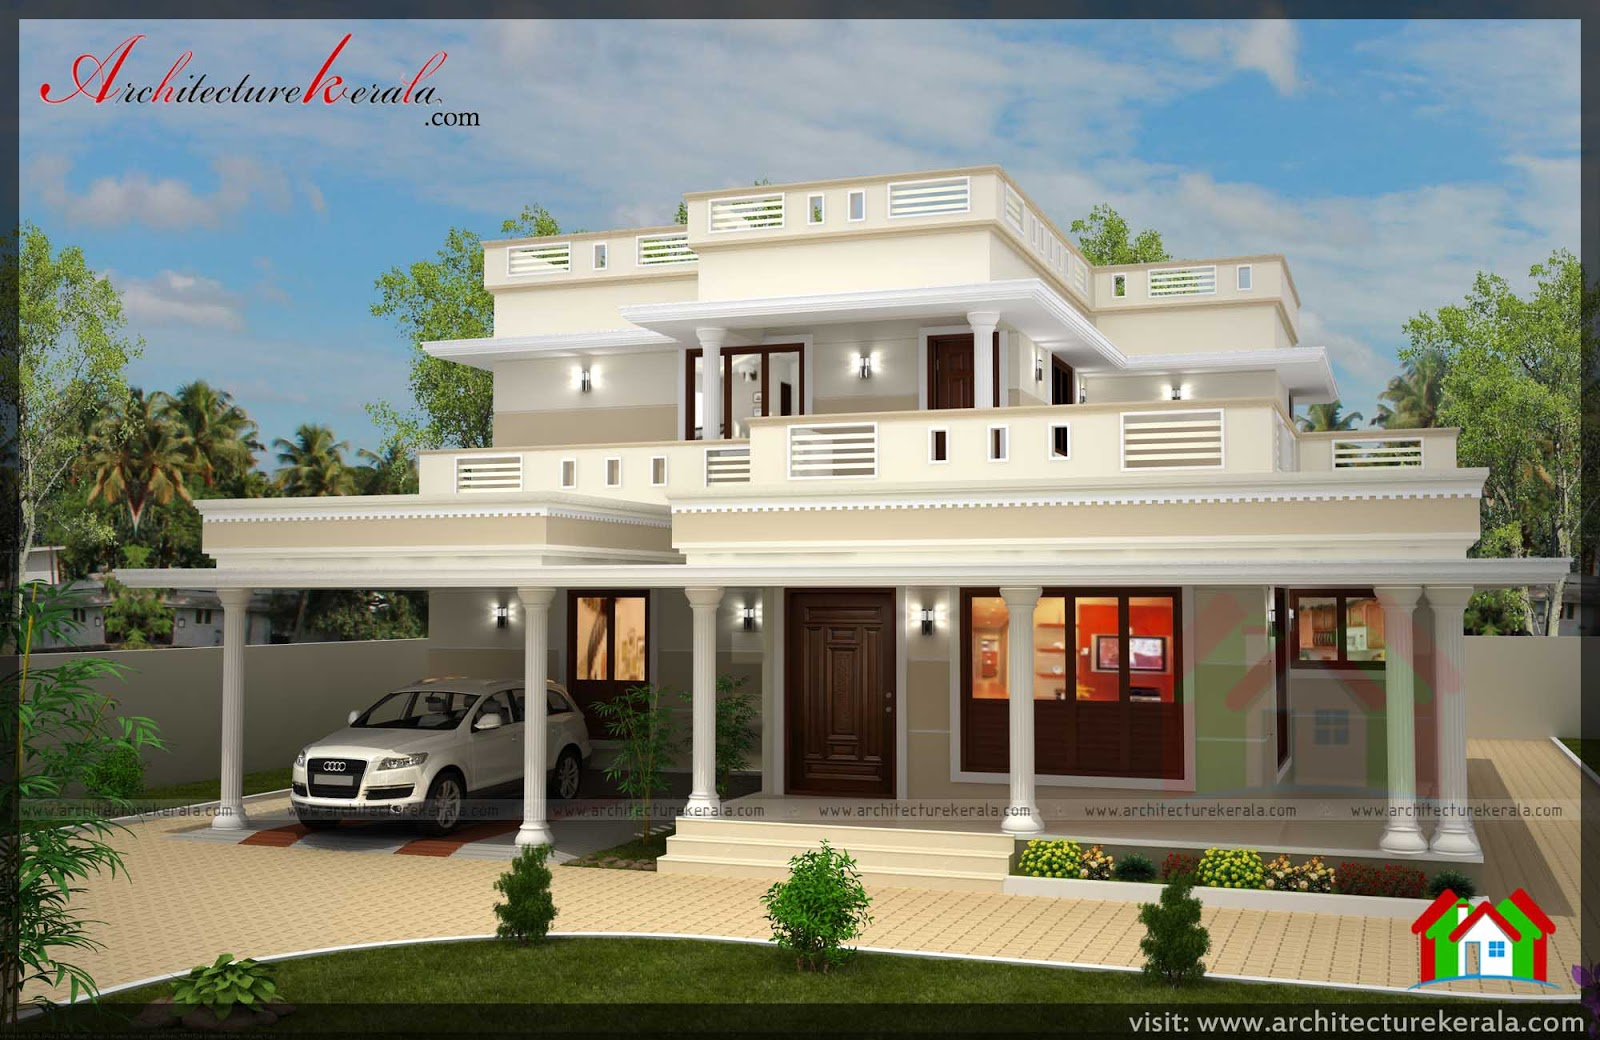 4 bed house plan with pooja room architecture kerala for House design program